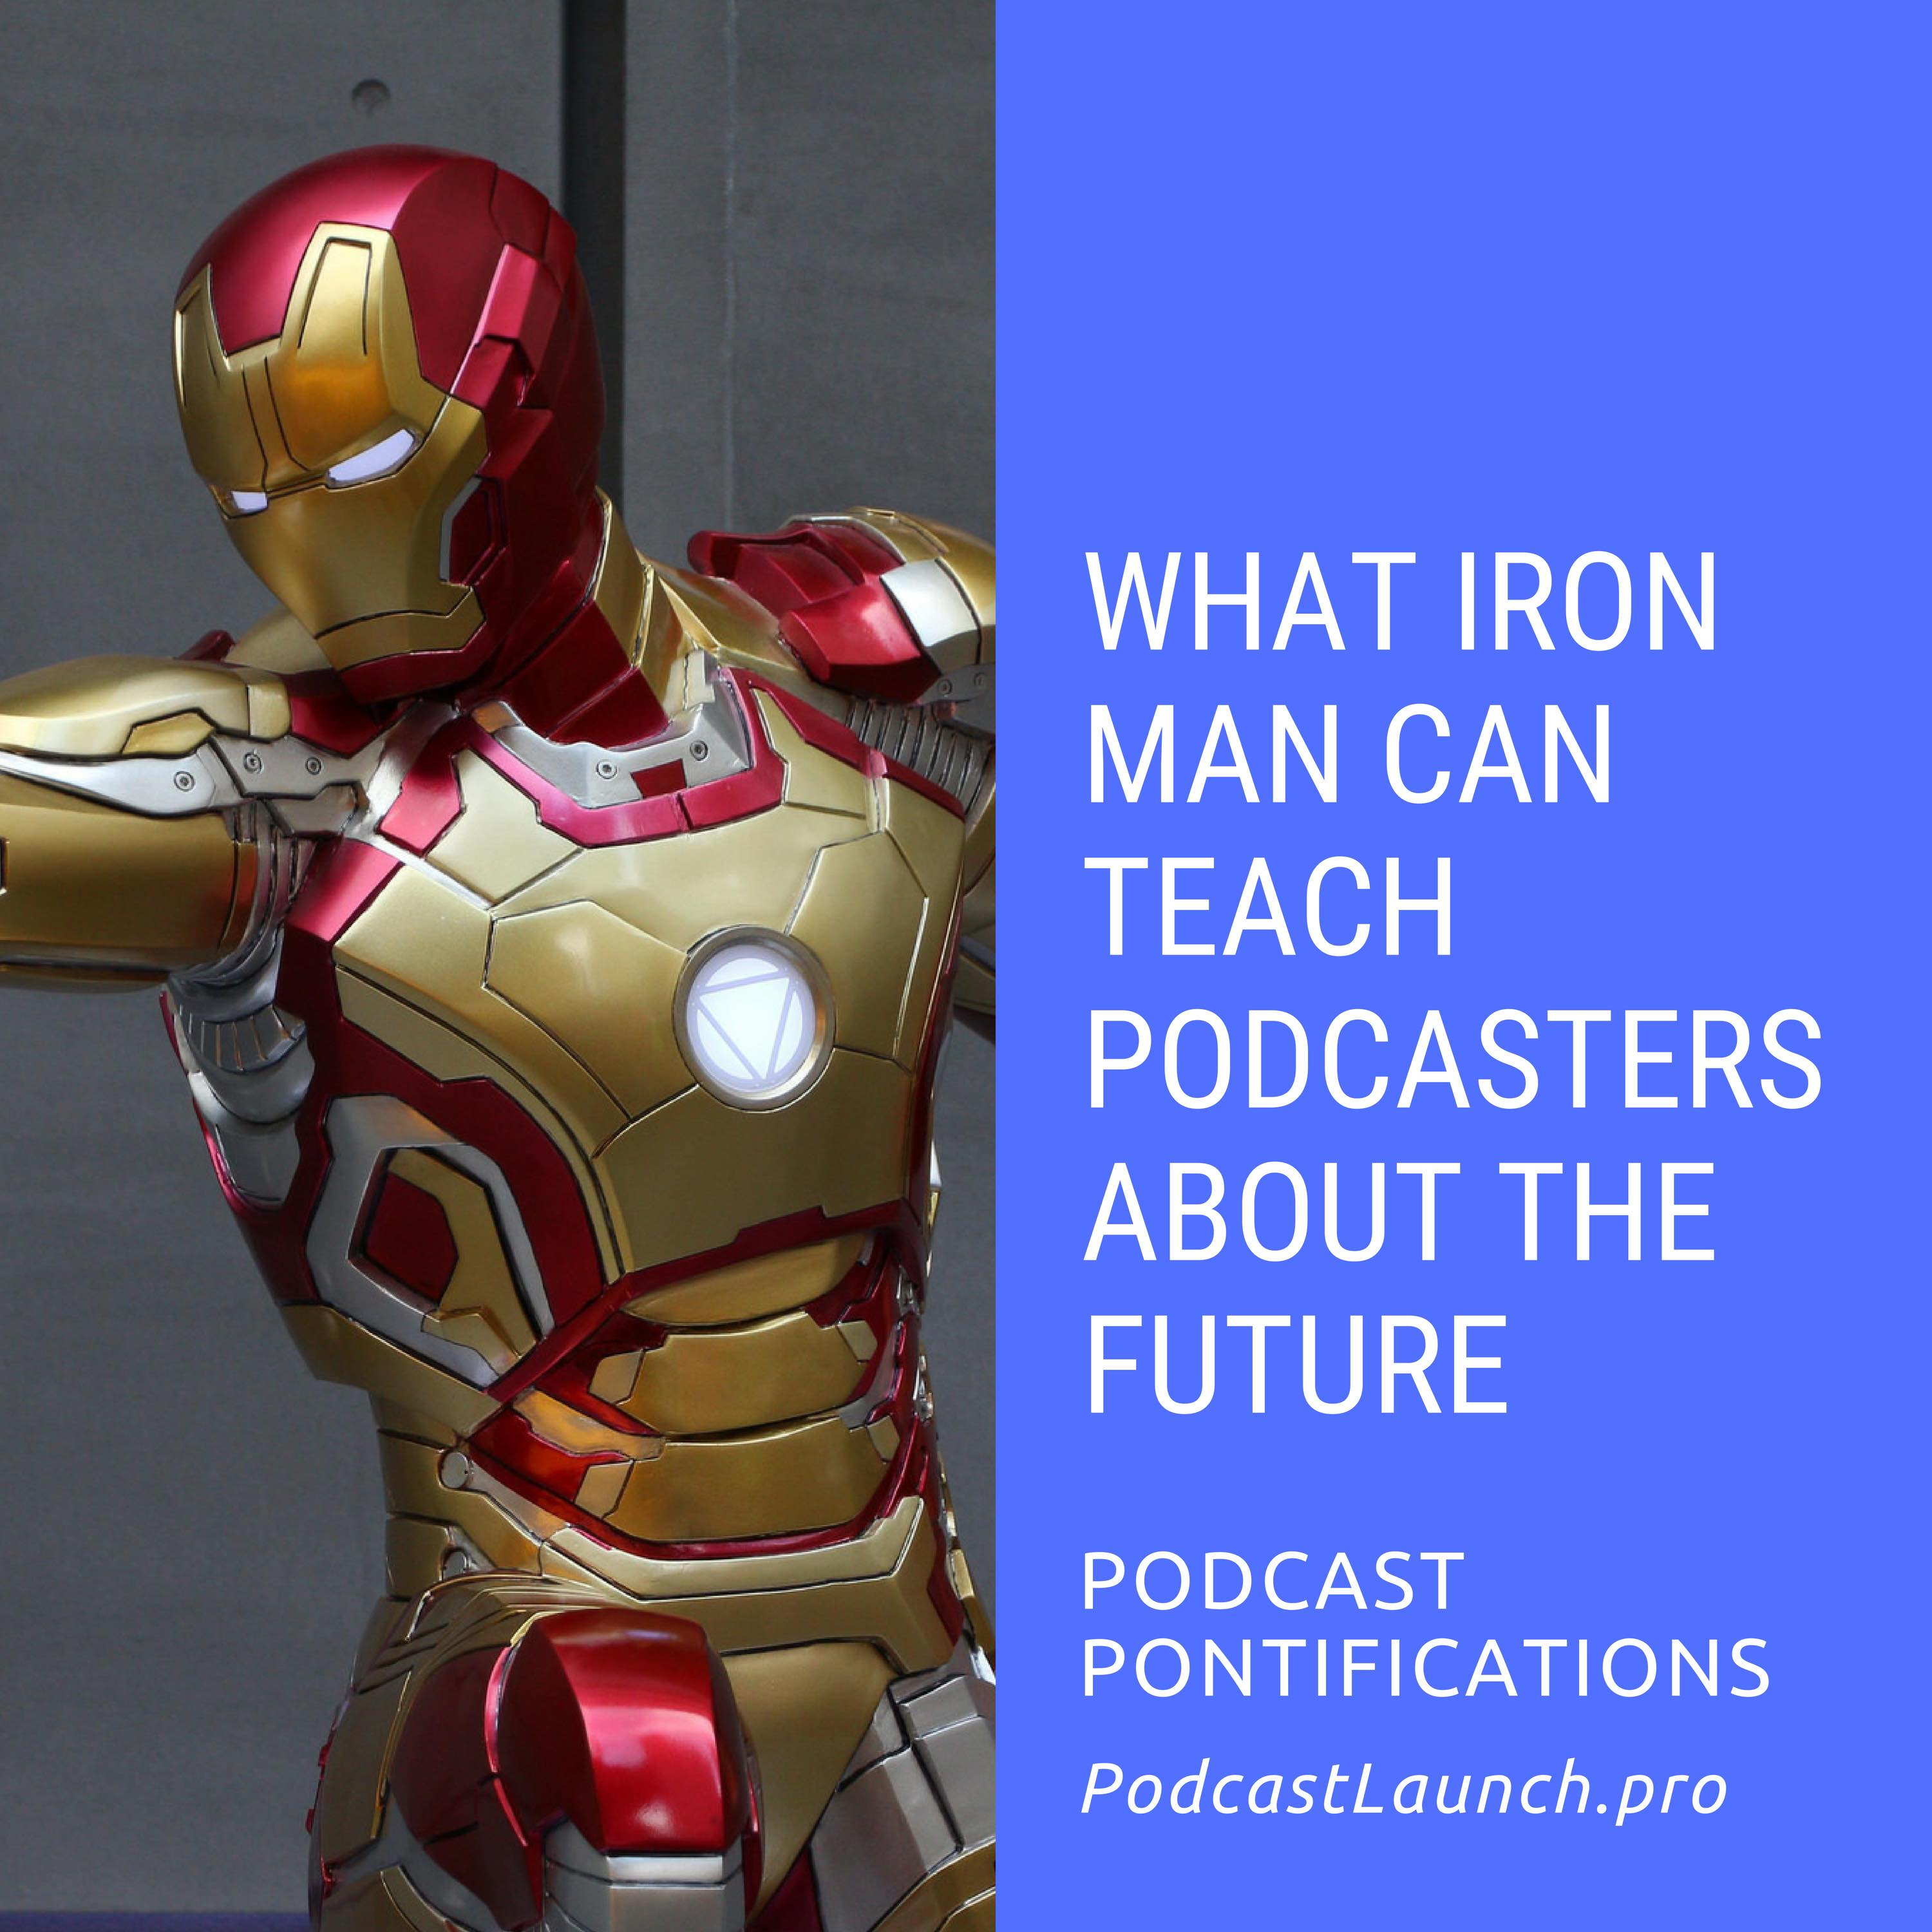 What Iron Man Can Teach Podcasters About The Future